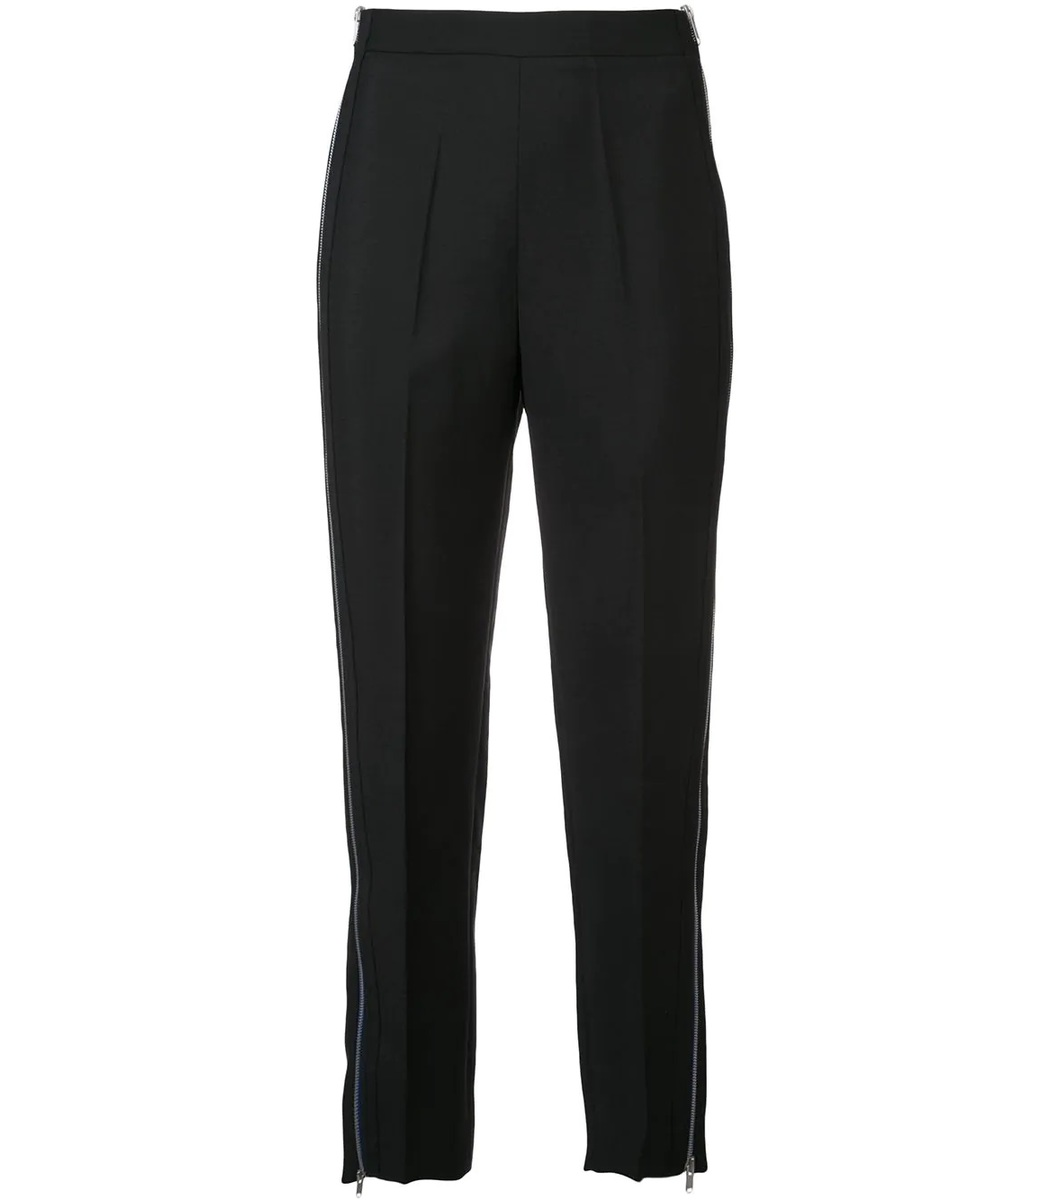 GIVENCHY Black High Waist Tailored Trousers